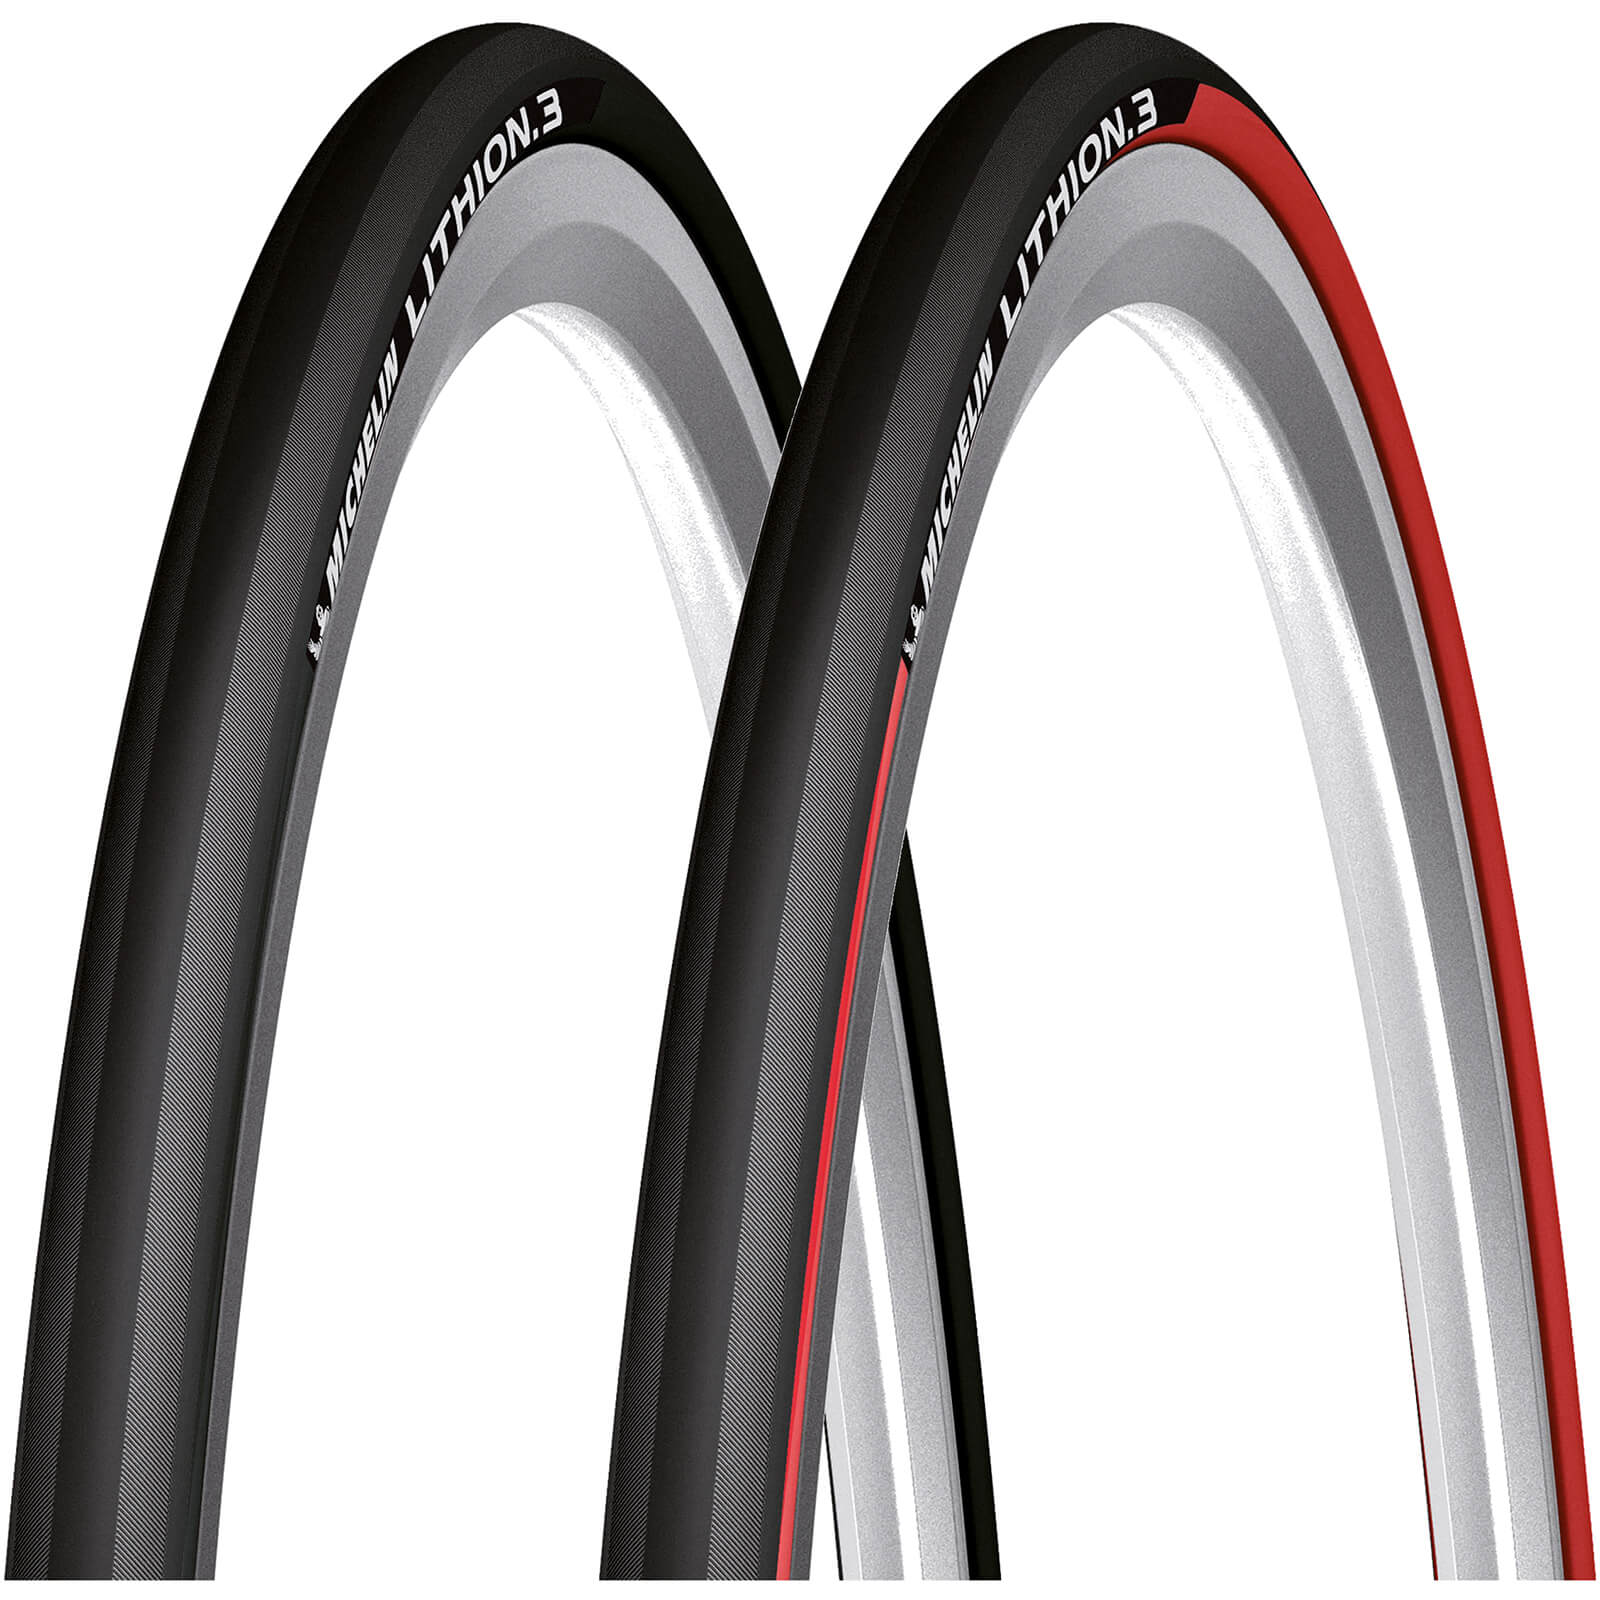 Michelin Lithion 3 Folding Clincher Road Tyre - Red - 700c x 23mm